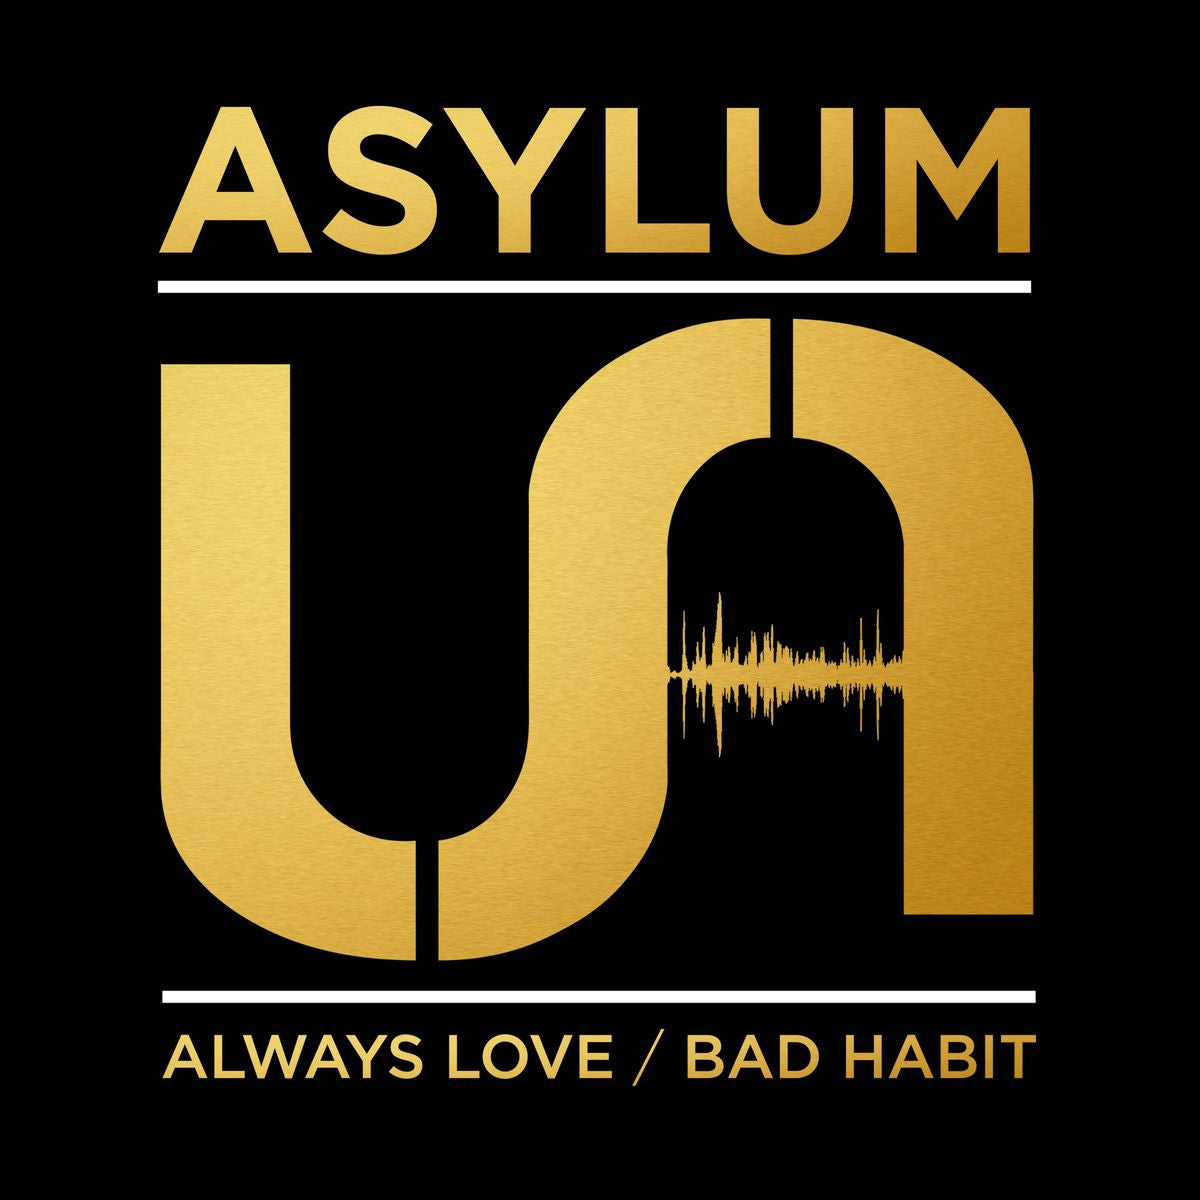 Asylum - Always Love / Bad Habit - Unearthed Sounds